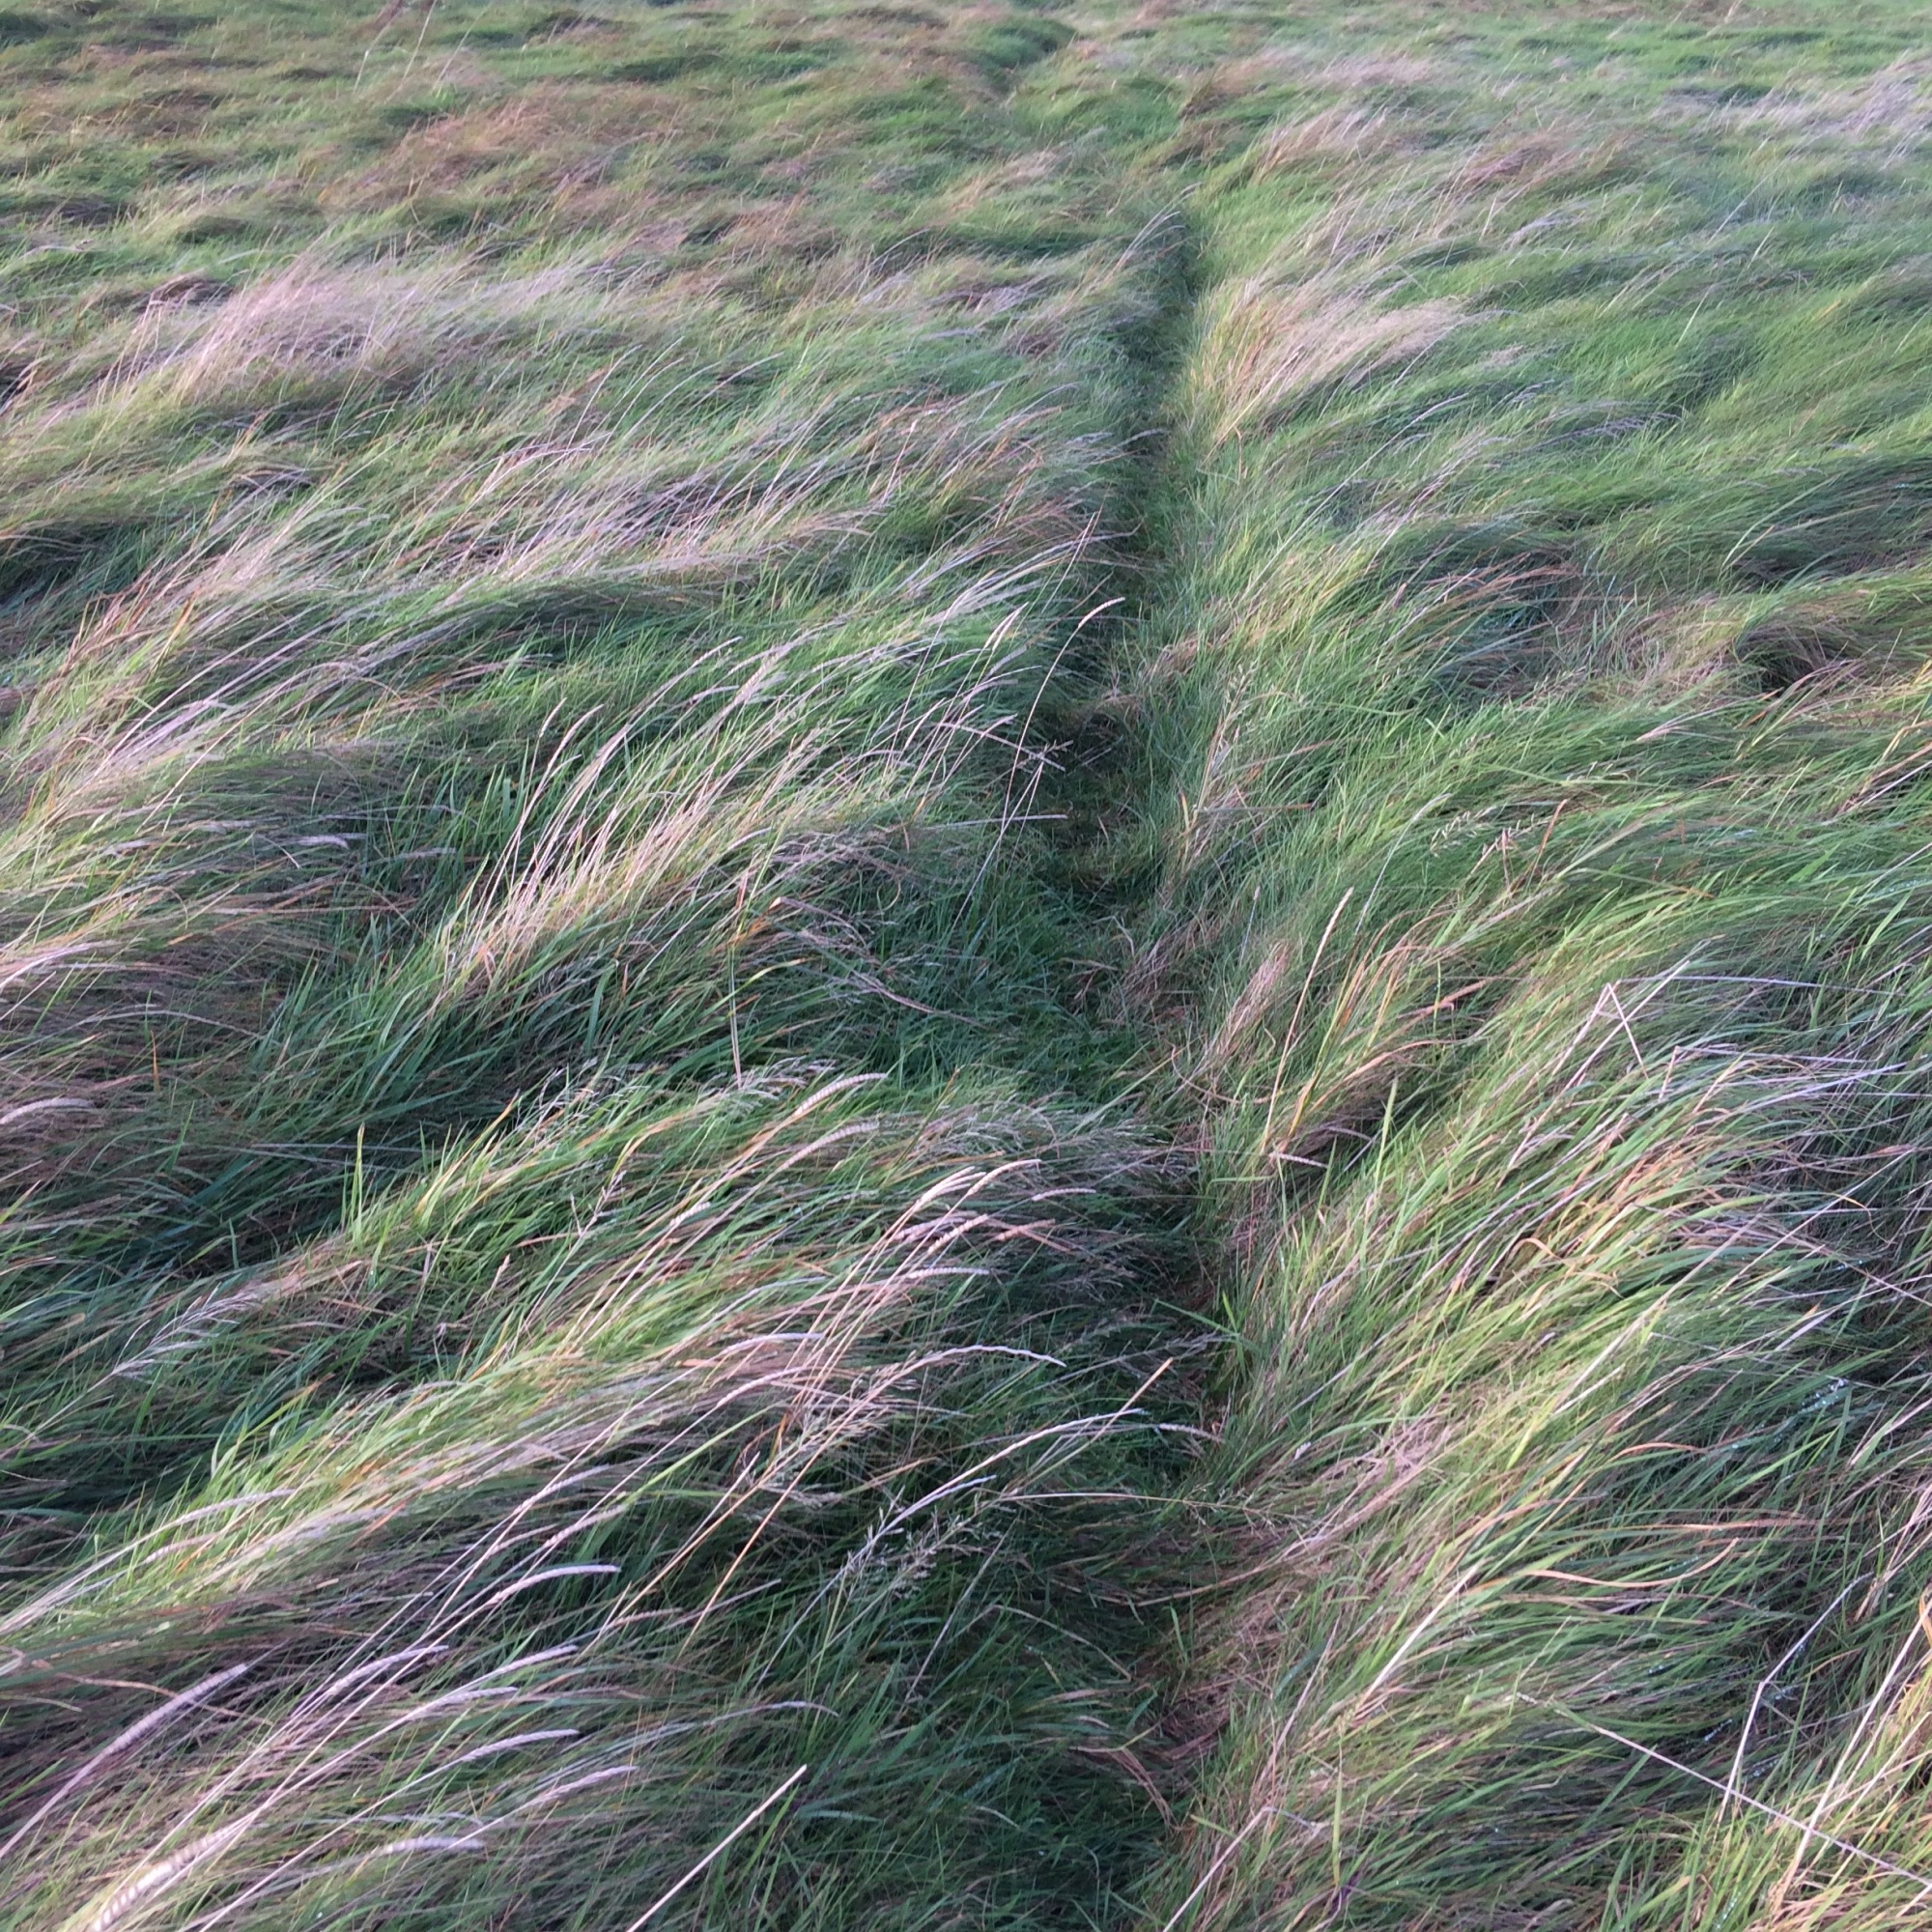 Grasses Project - Paths - Dog Walking Path - Burry Port 2018